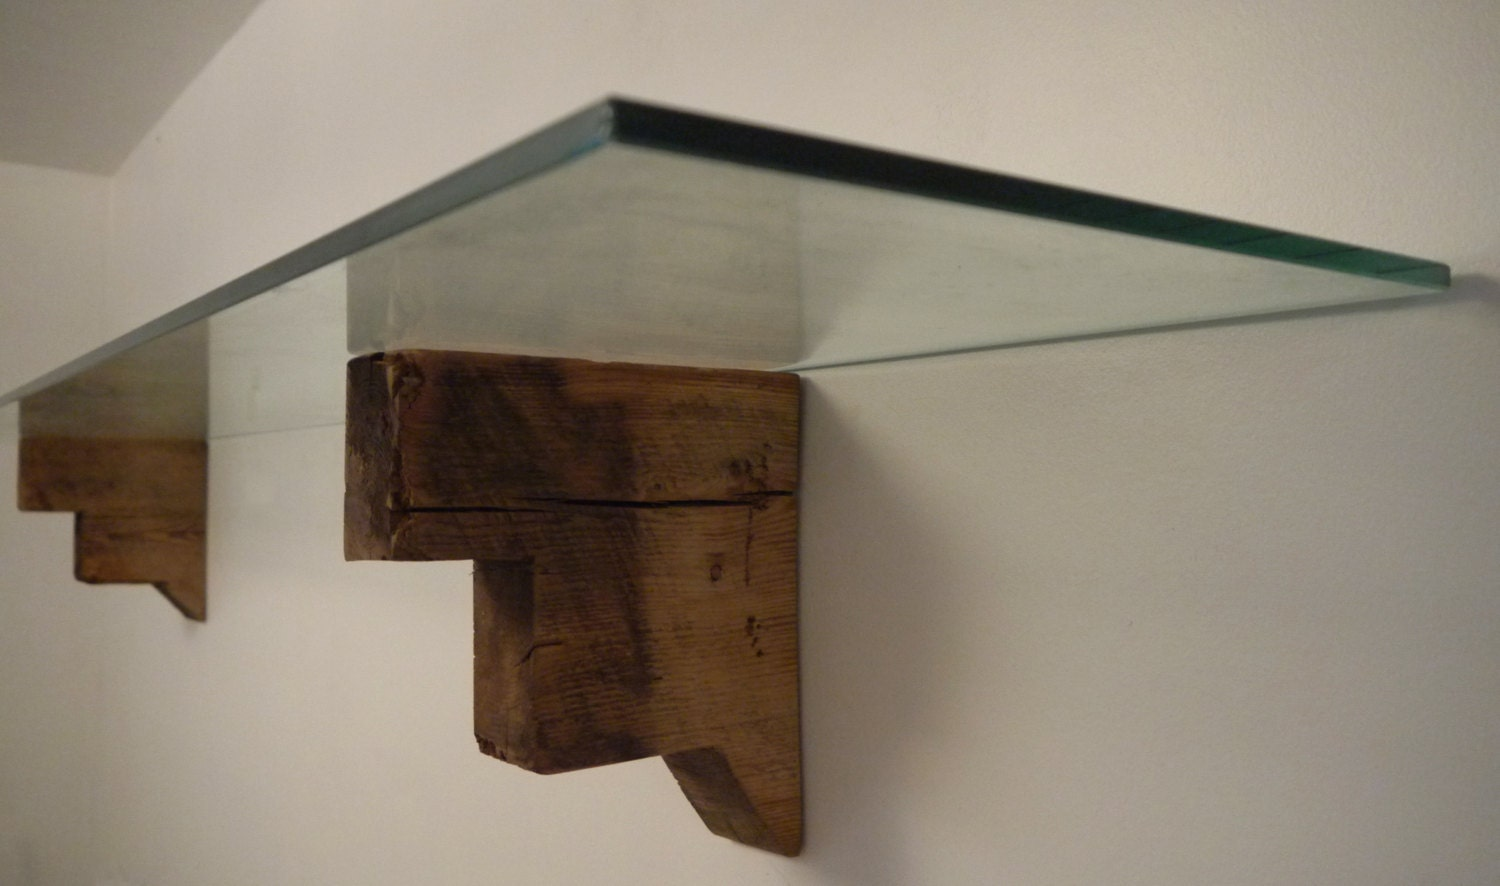 ... Wood Shelves Projects Download simple bread box plans – diywoodplans